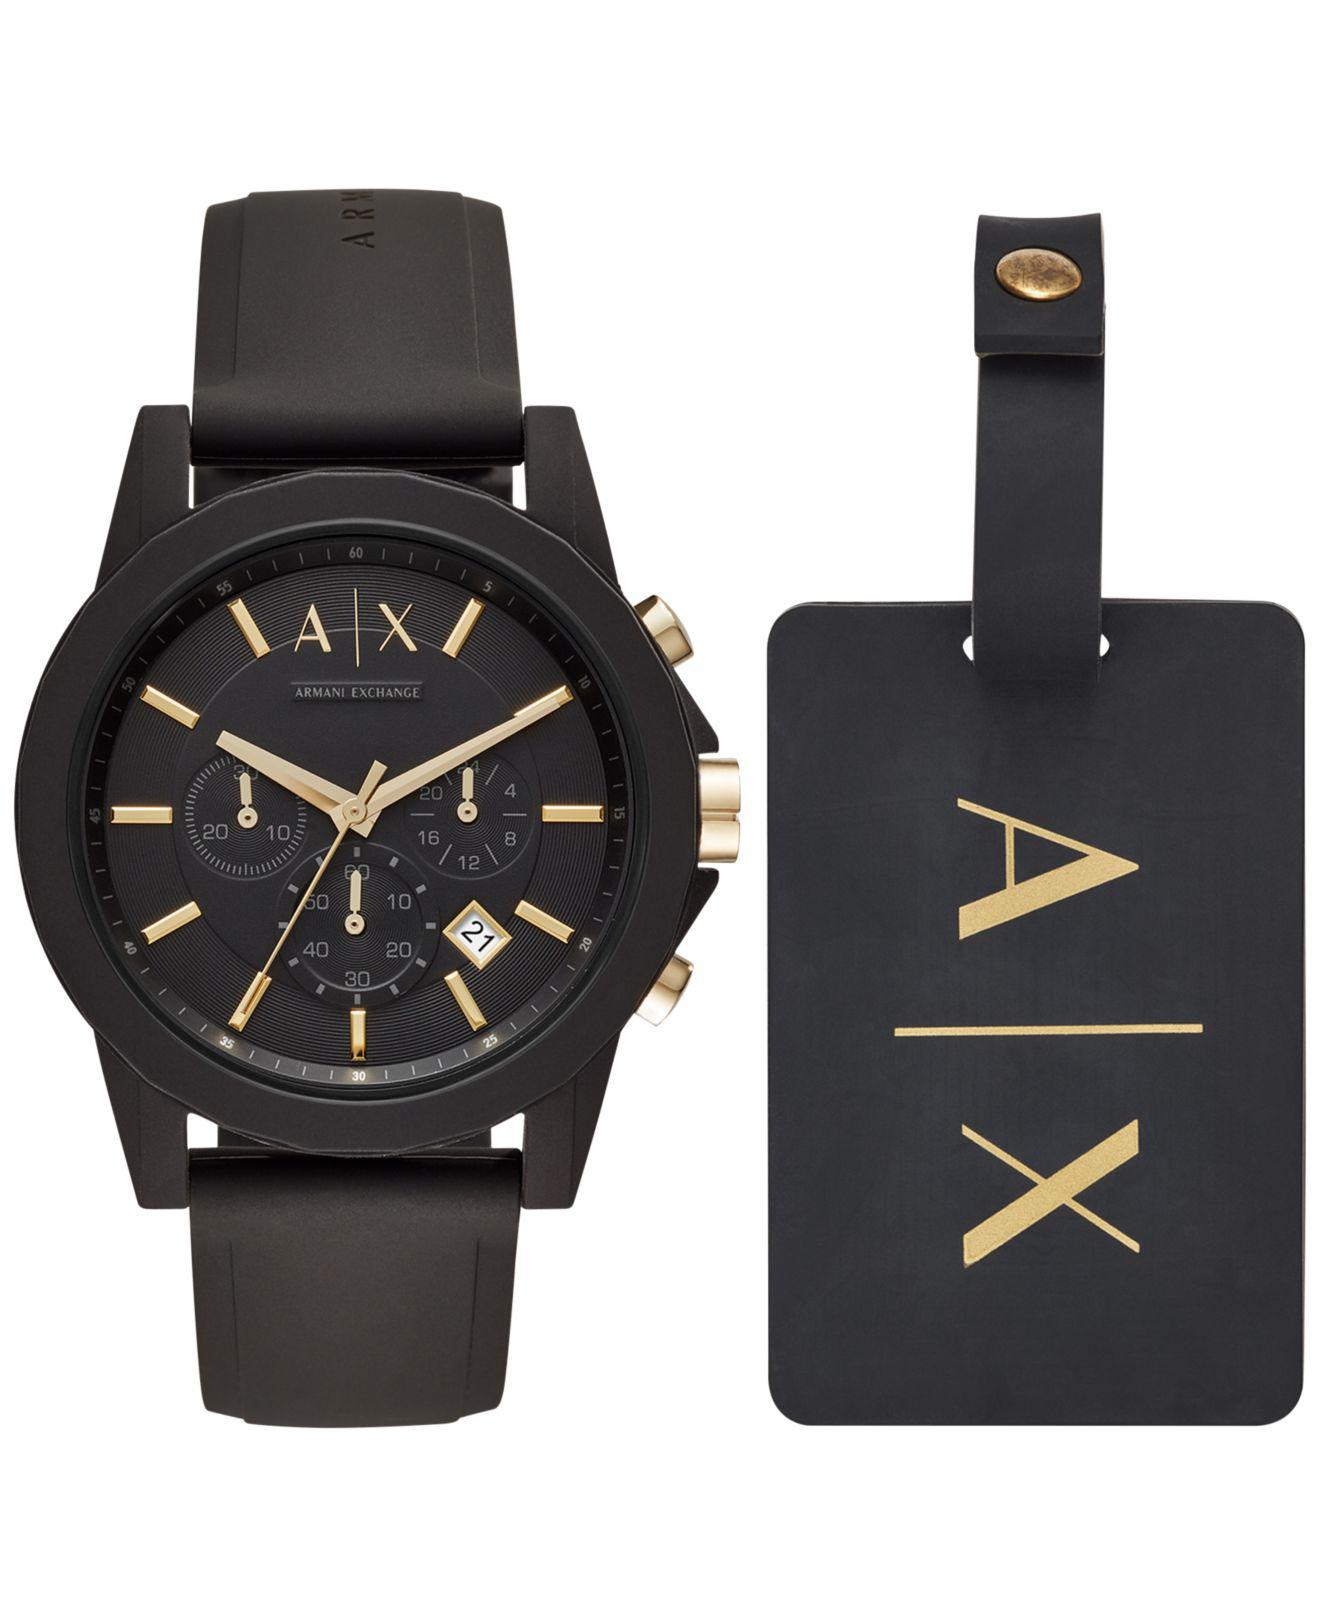 b46f4d47e433 Lyst - Armani Exchange Ax7105 Outerbanks Watch And luggage Tag Set ...